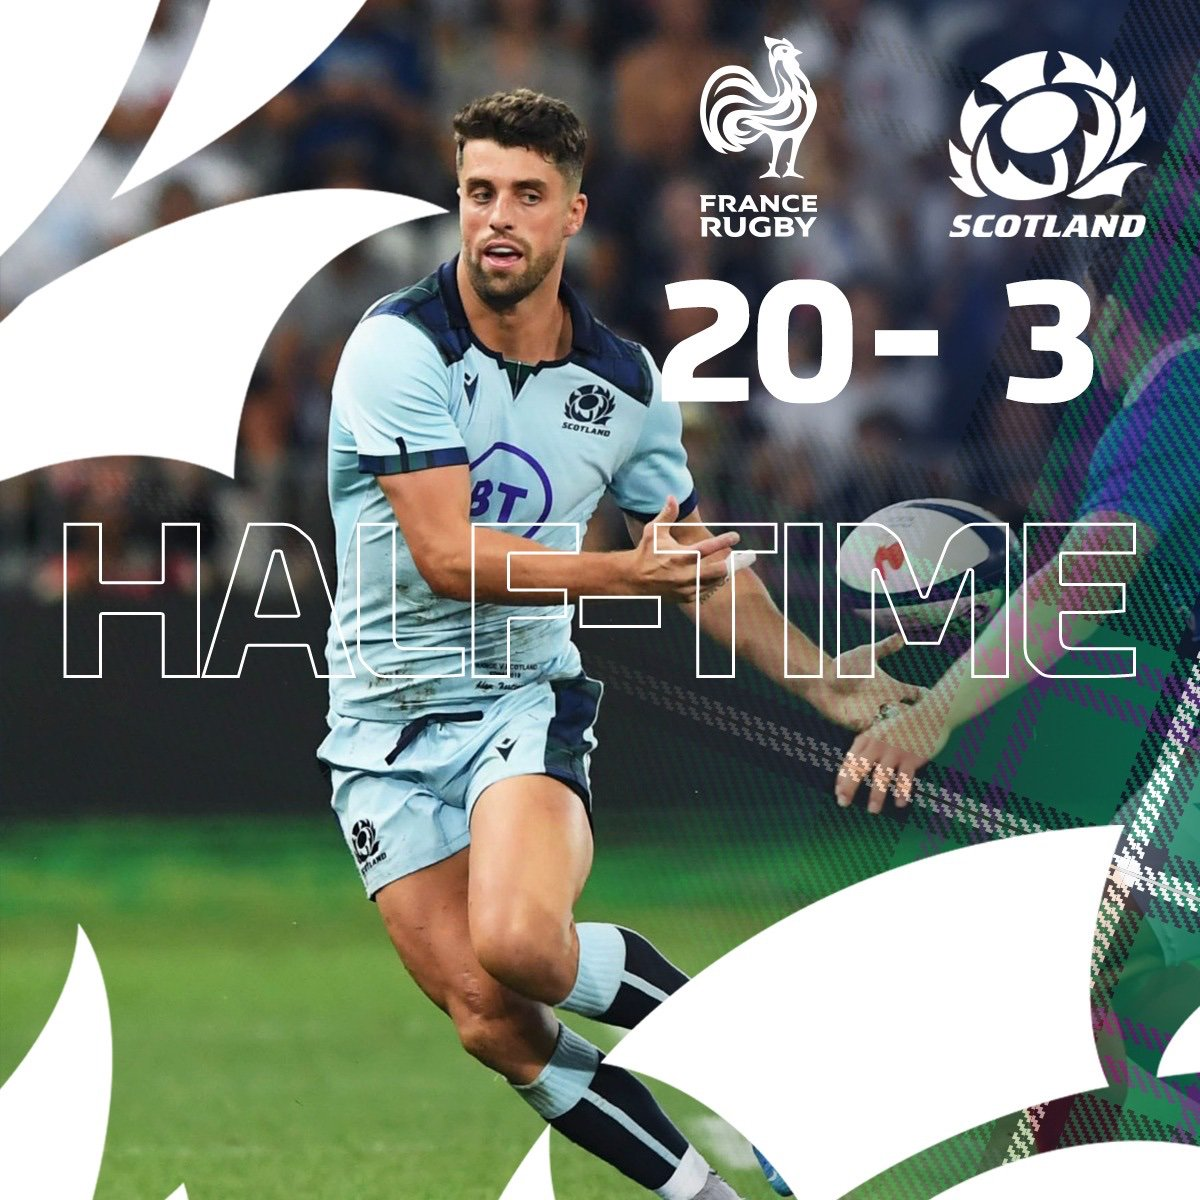 HALF TIME | 40 minutes played in Nice with the hosts holding a 17-point lead. #AsOne